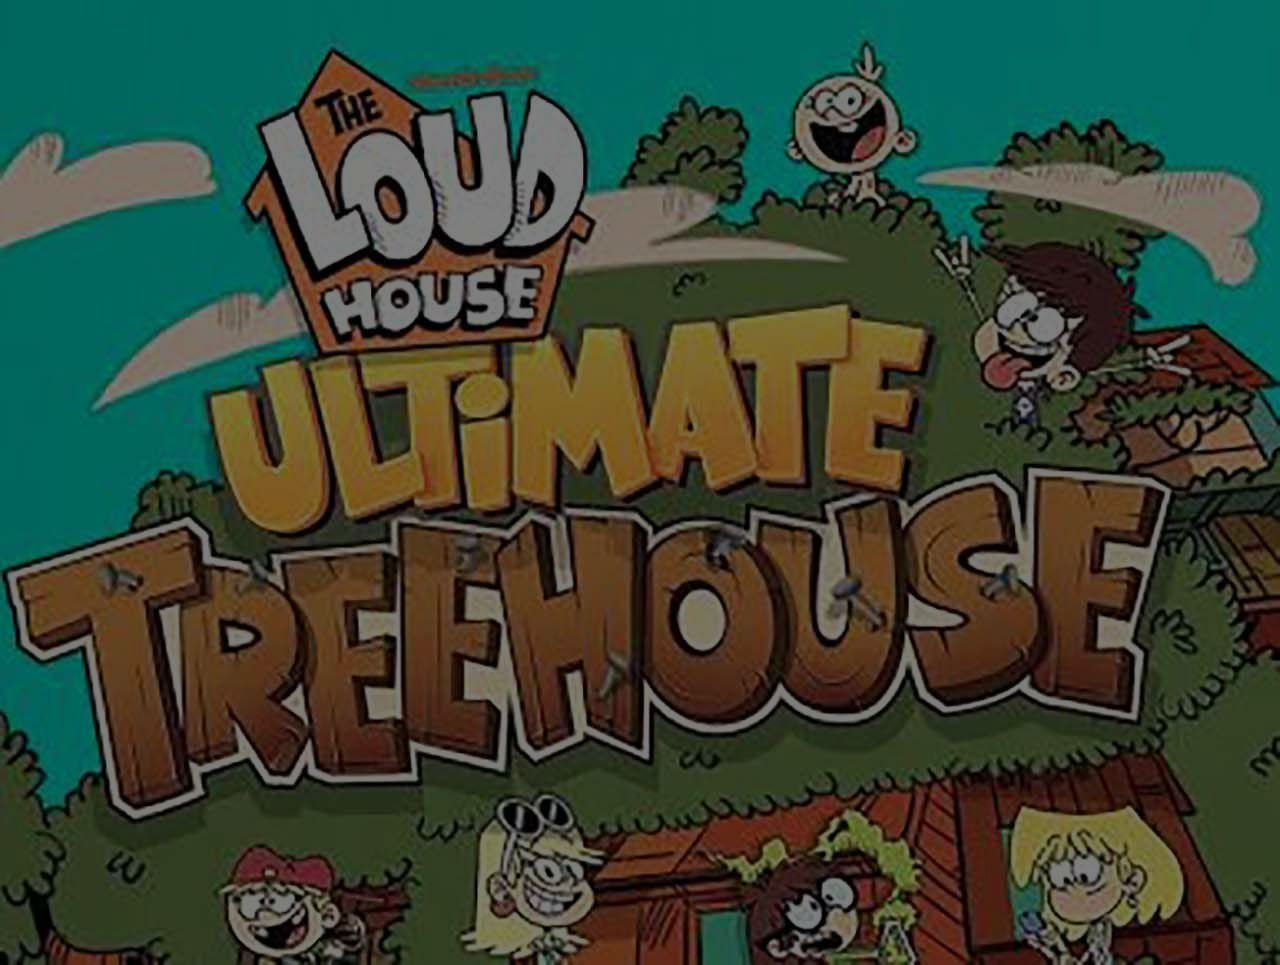 Loud House Ultimate Treehouse Hack 2020 - Online Cheat For Unlimited Resources